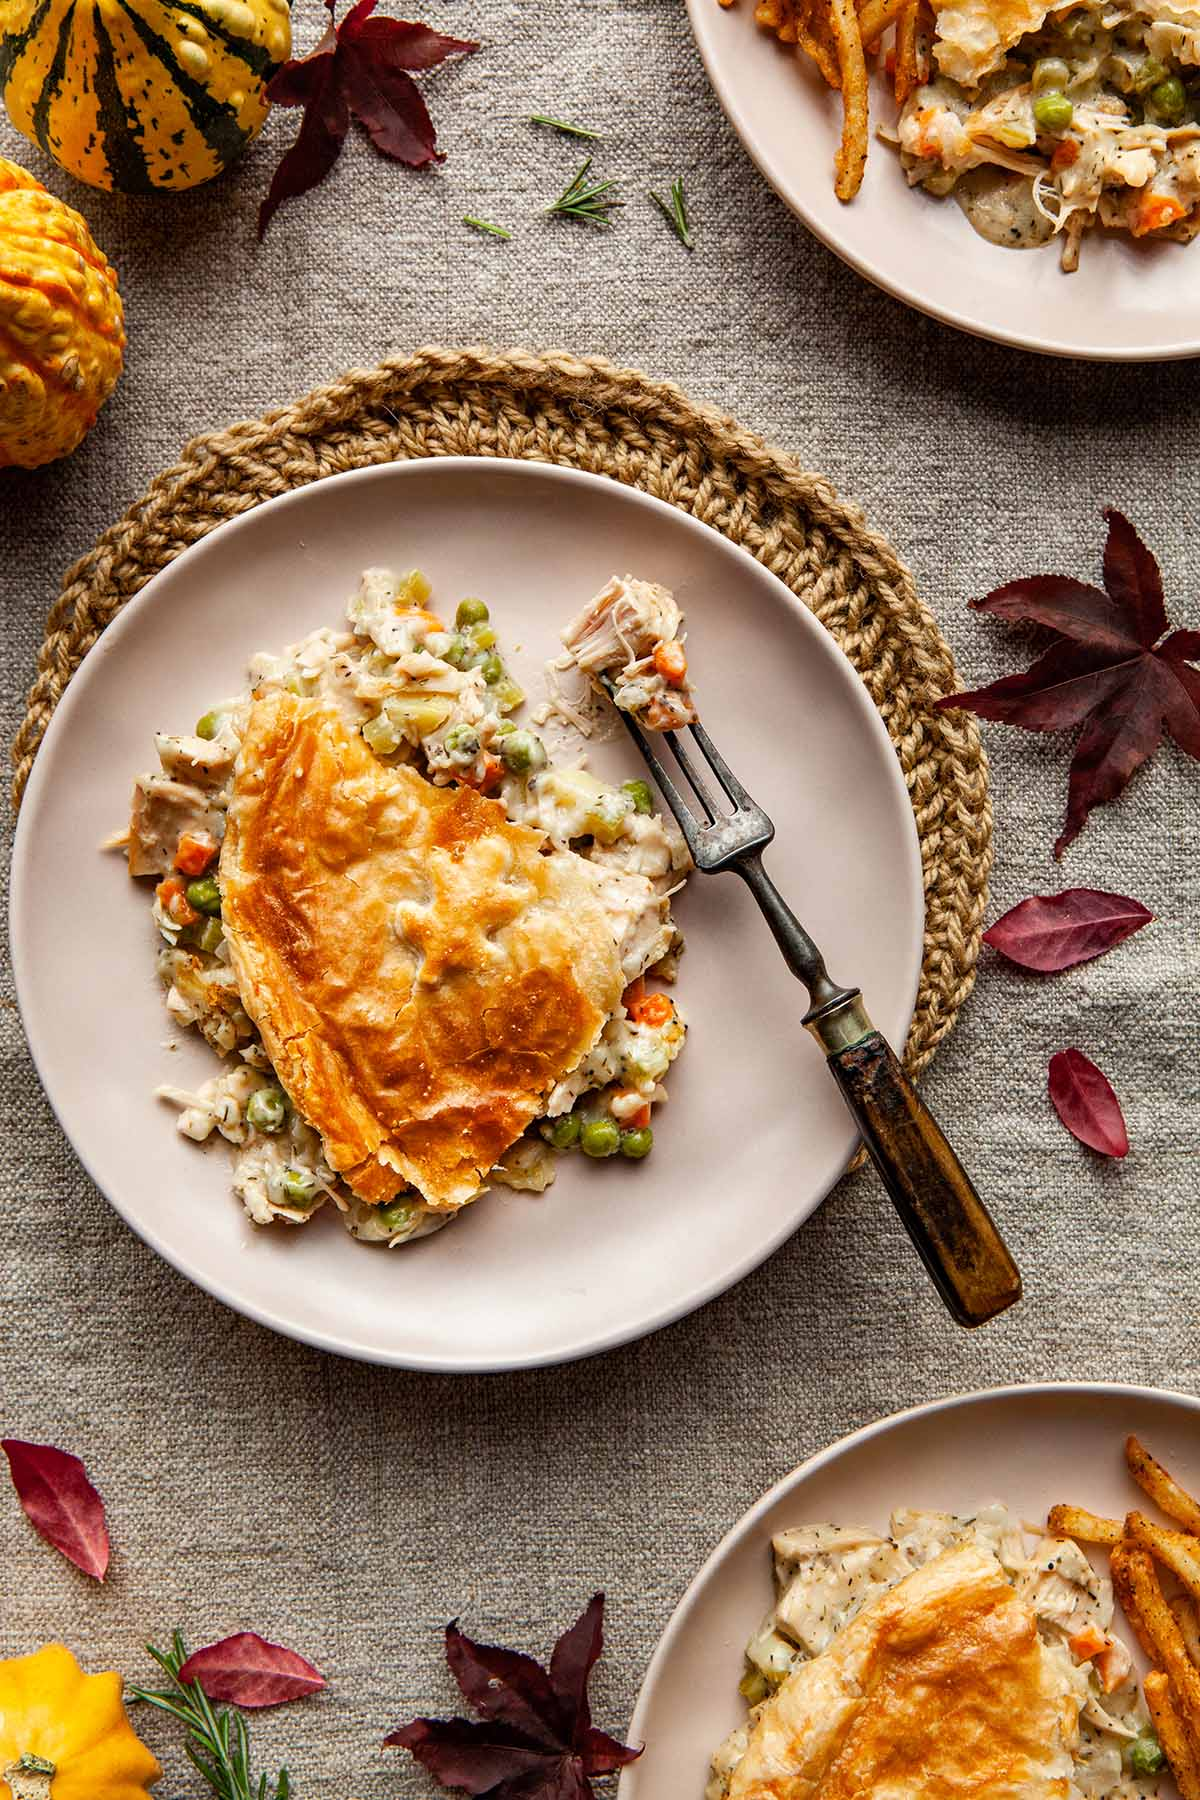 A serving of puff pastry turkey pot pie on a plate with fork and some fall decorations around the table.